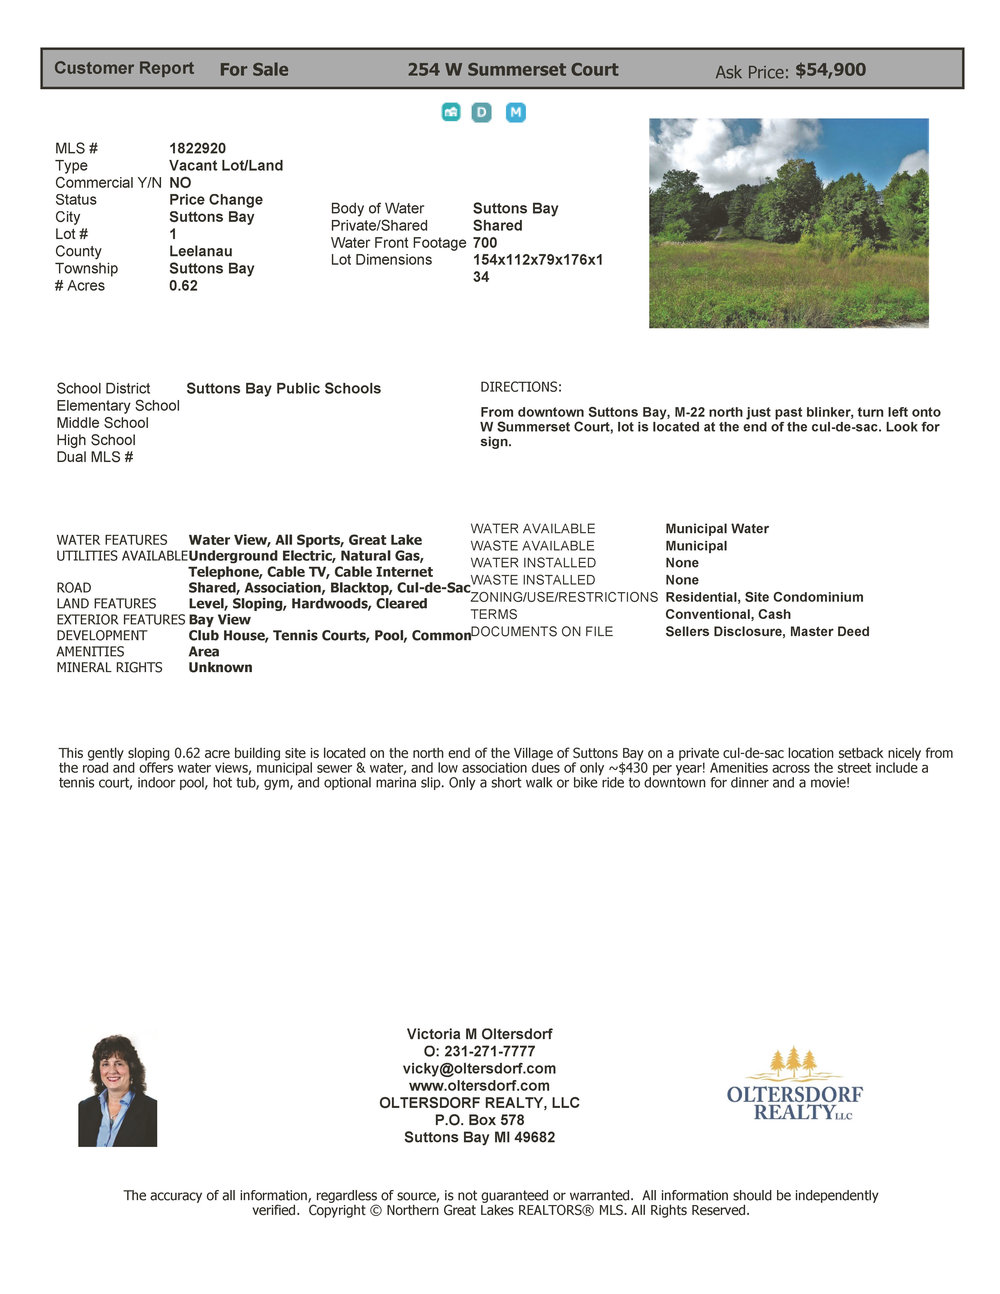 254 W Summerset Court, village of suttons bay vacant lot for sale by Oltersdorf Realty LLc, suttons bay and leelanau county realtors